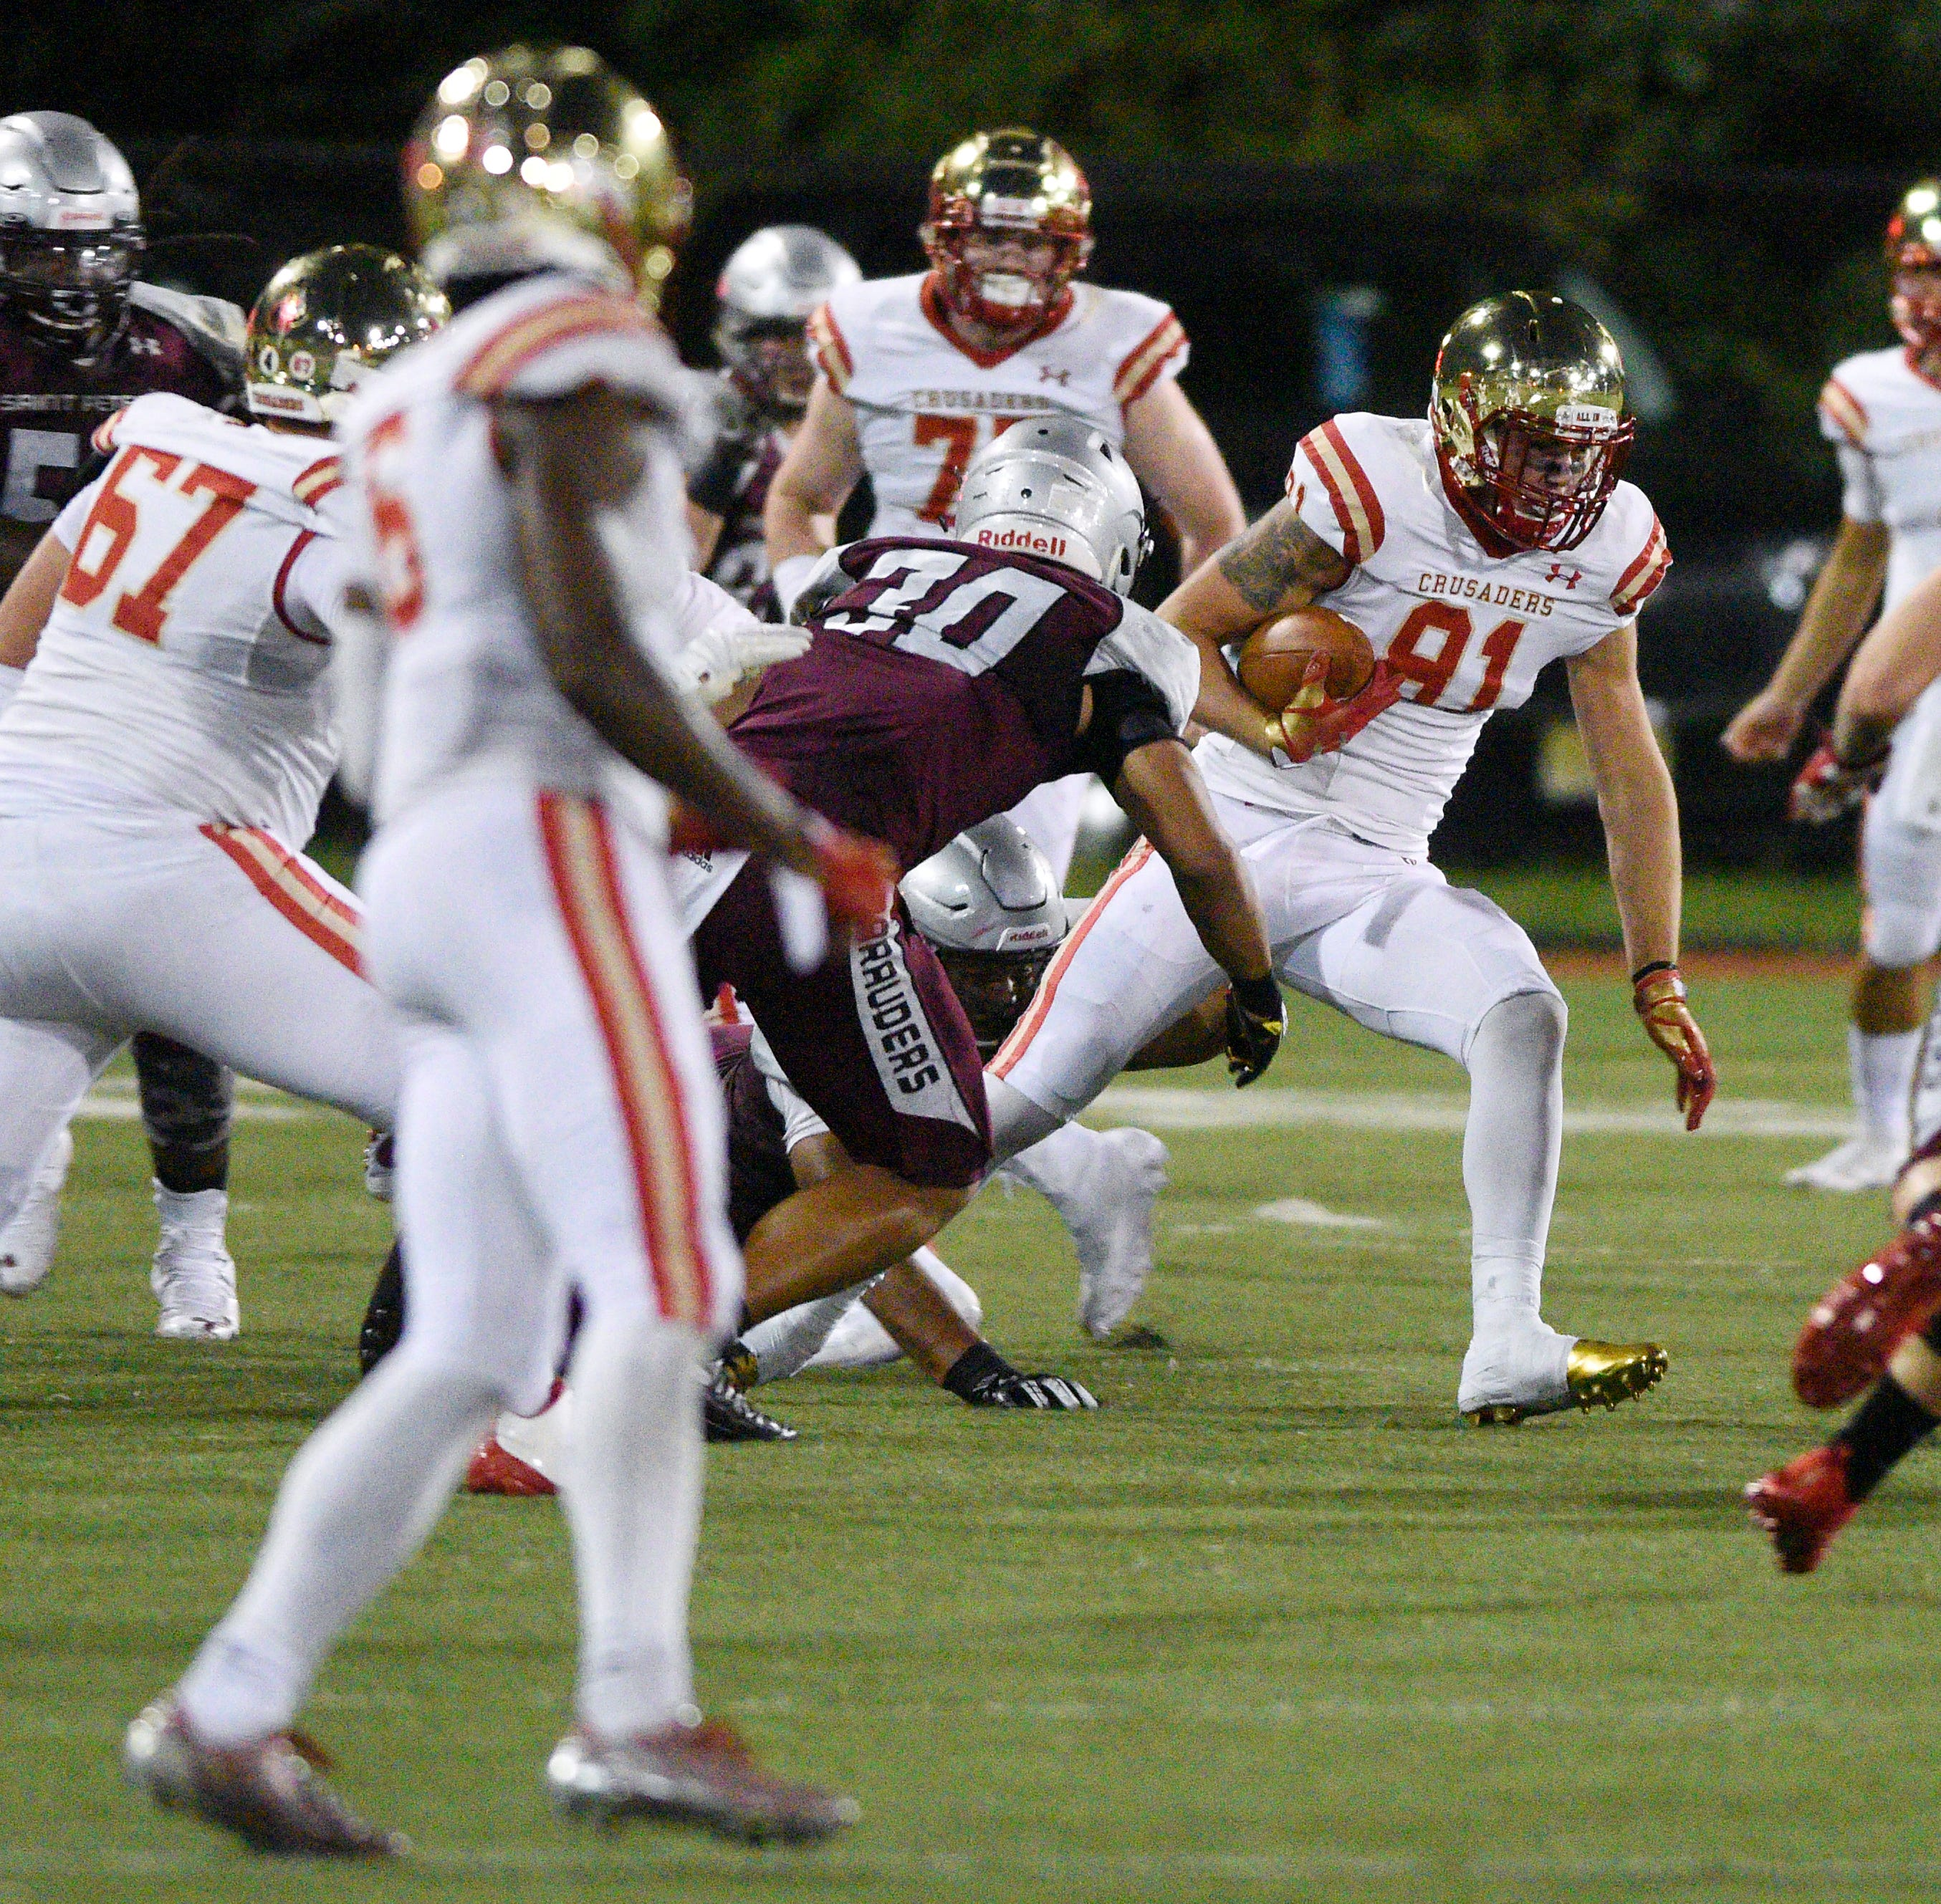 Buckle up for Bergen Catholic vs. Don Bosco LXX. Here are 5 things to look for